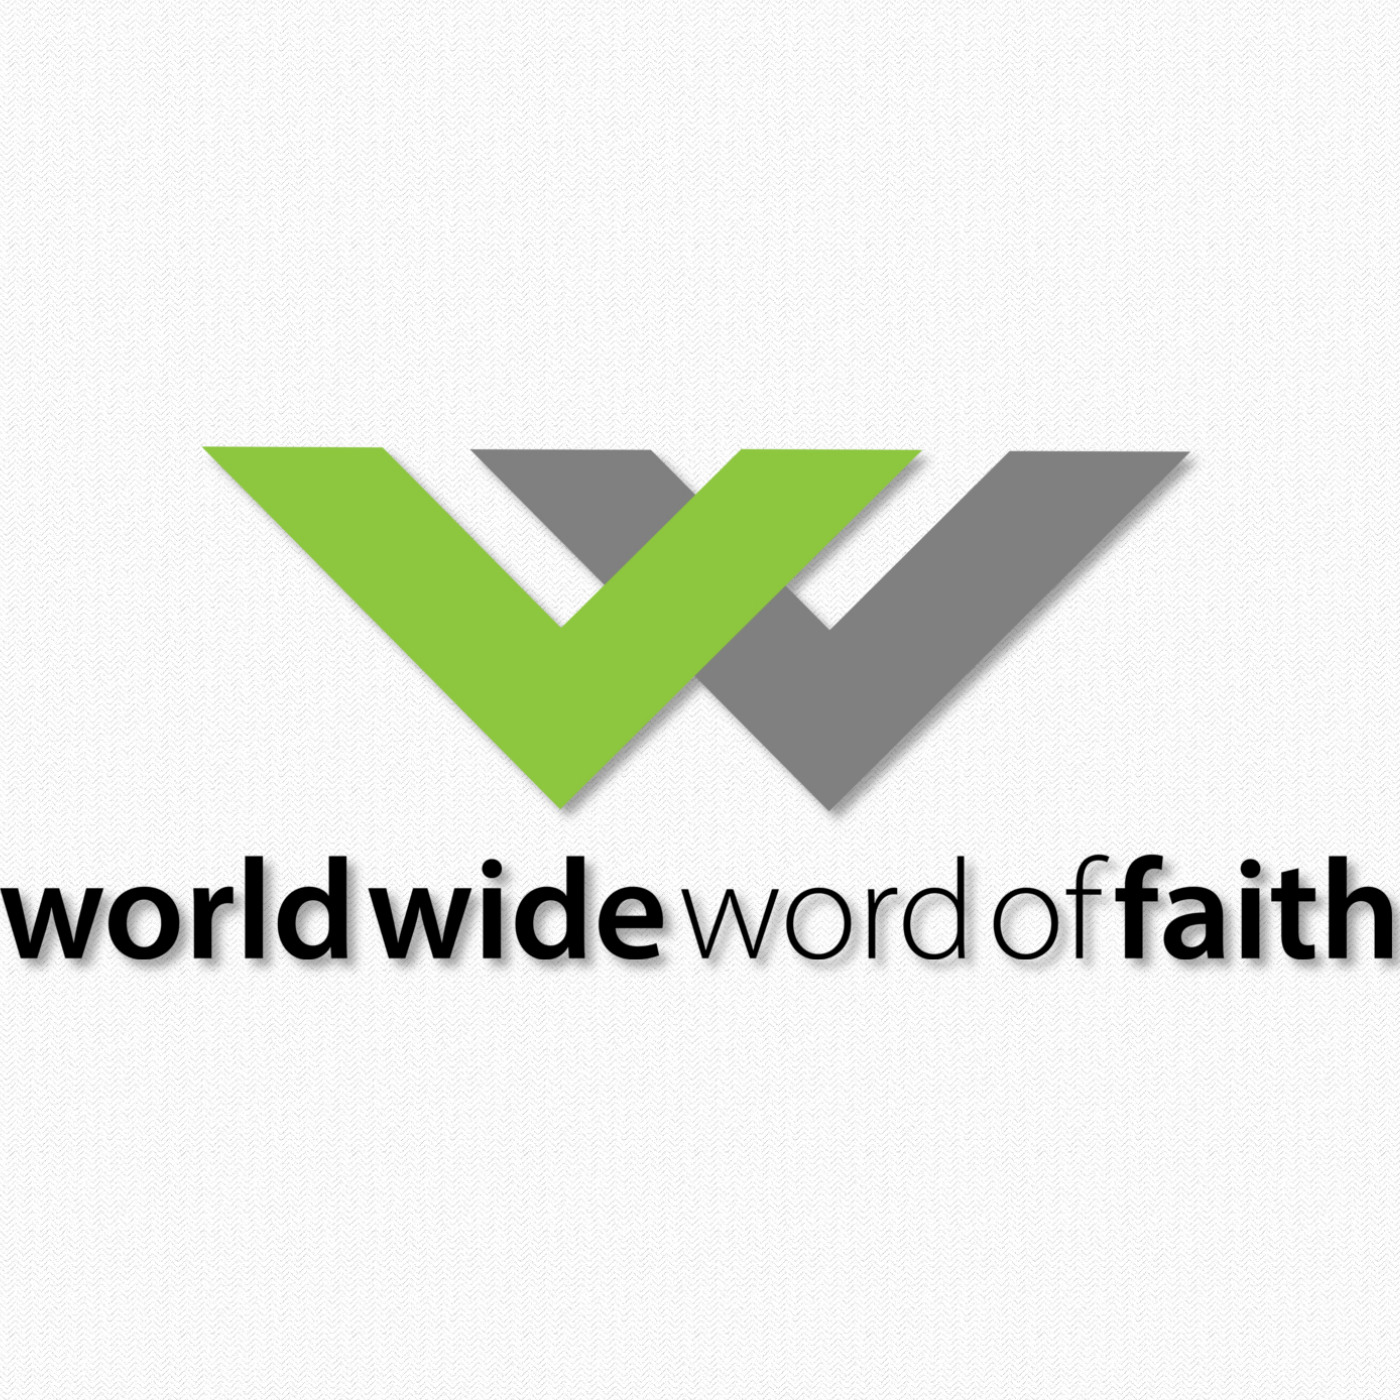 World Wide Word of Faith